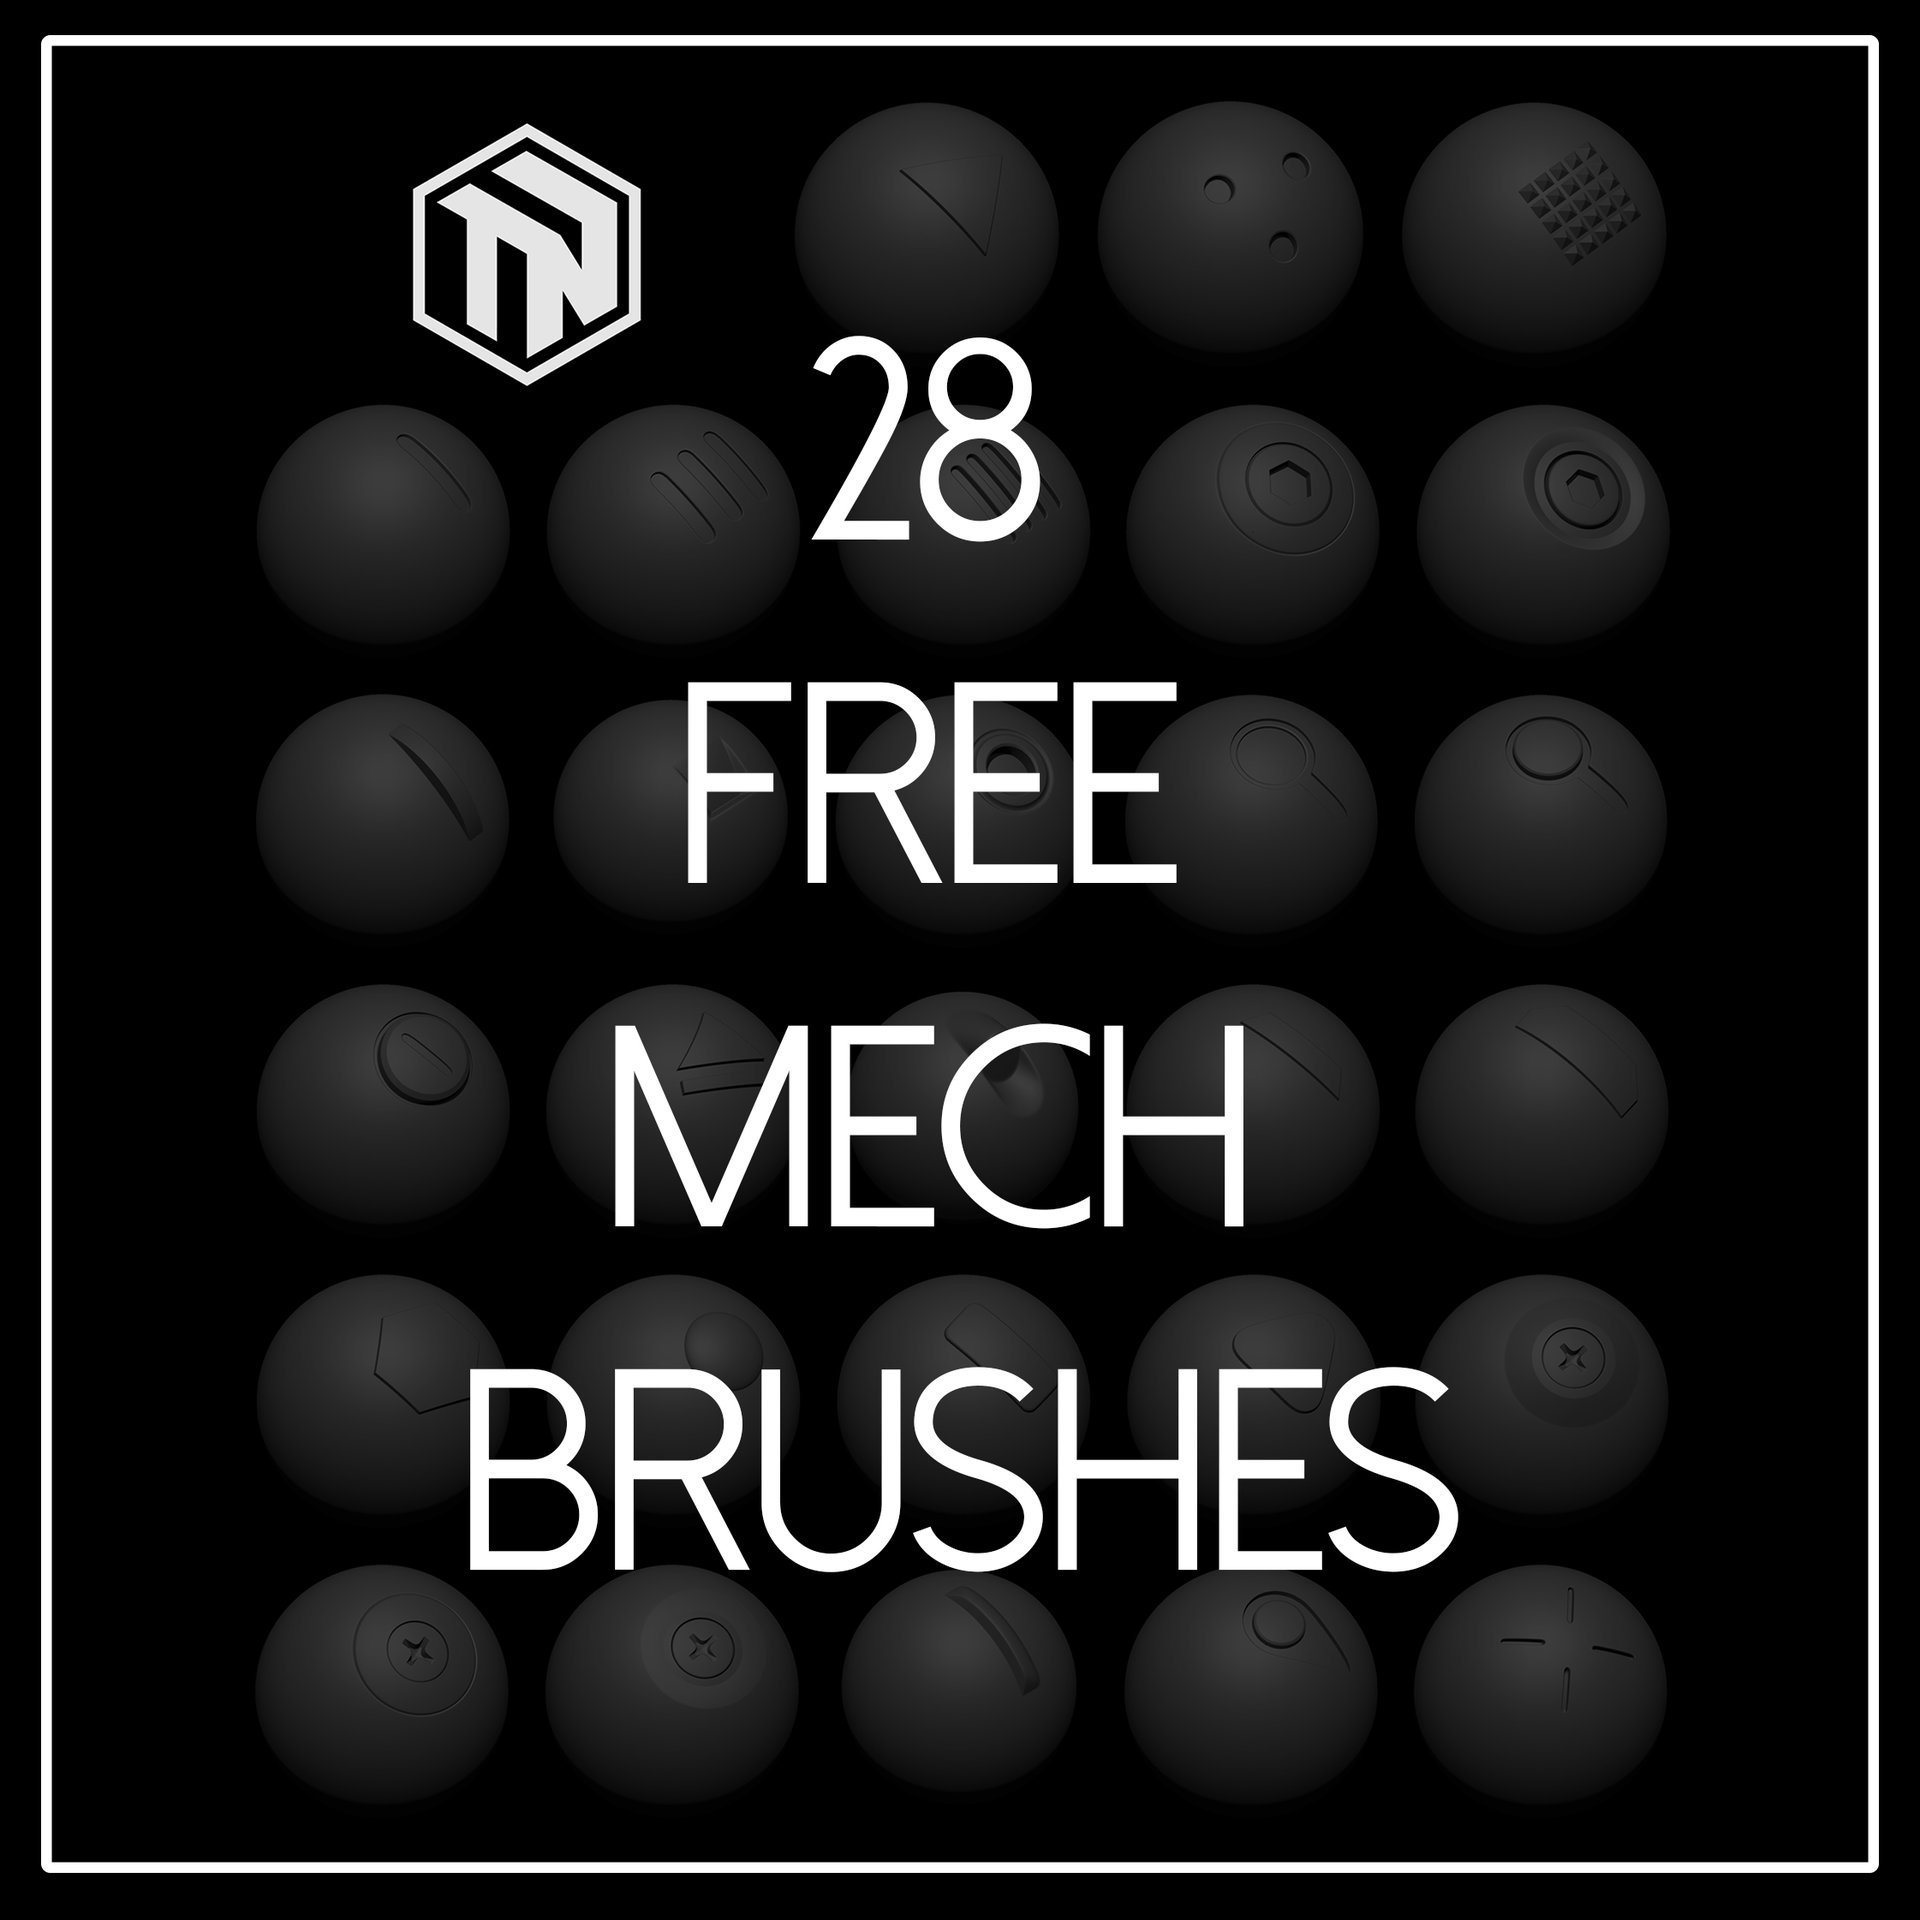 artstation zbrush 28 free mech brushes tom newbury